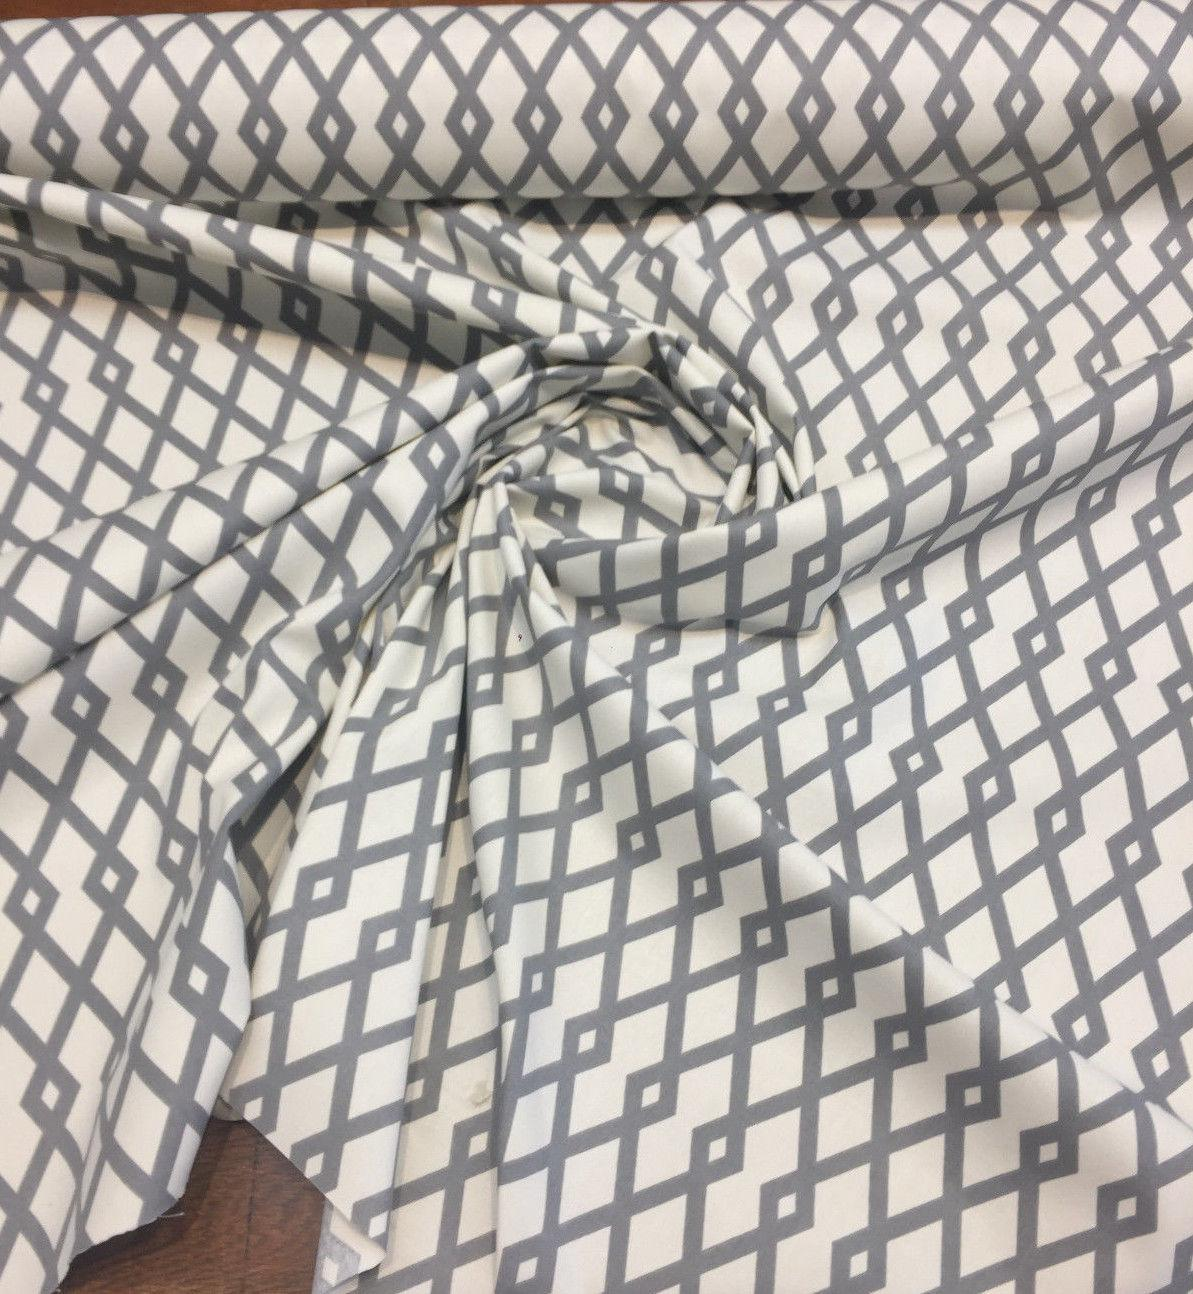 c59437c27fb ... Home Graphite Fret Ivory and Charcoal Grey Robert Allen Fabric By the  yard